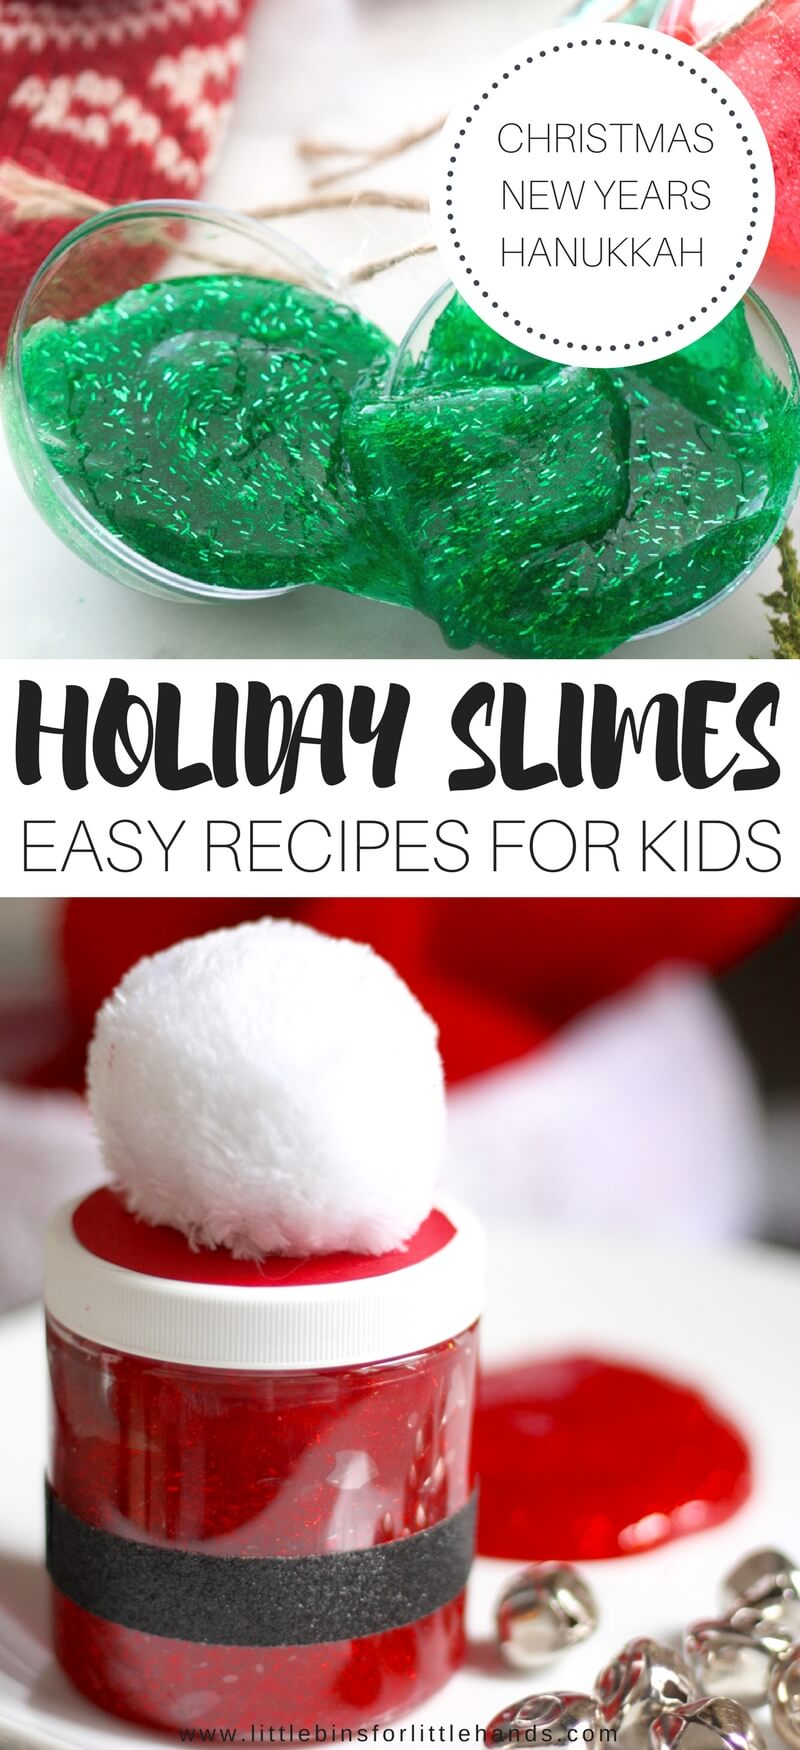 BEST HOLIDAY SLIMES FOR FUN CHRISTMAS SCIENCE ACTIVITIES TO DO WITH KIDS